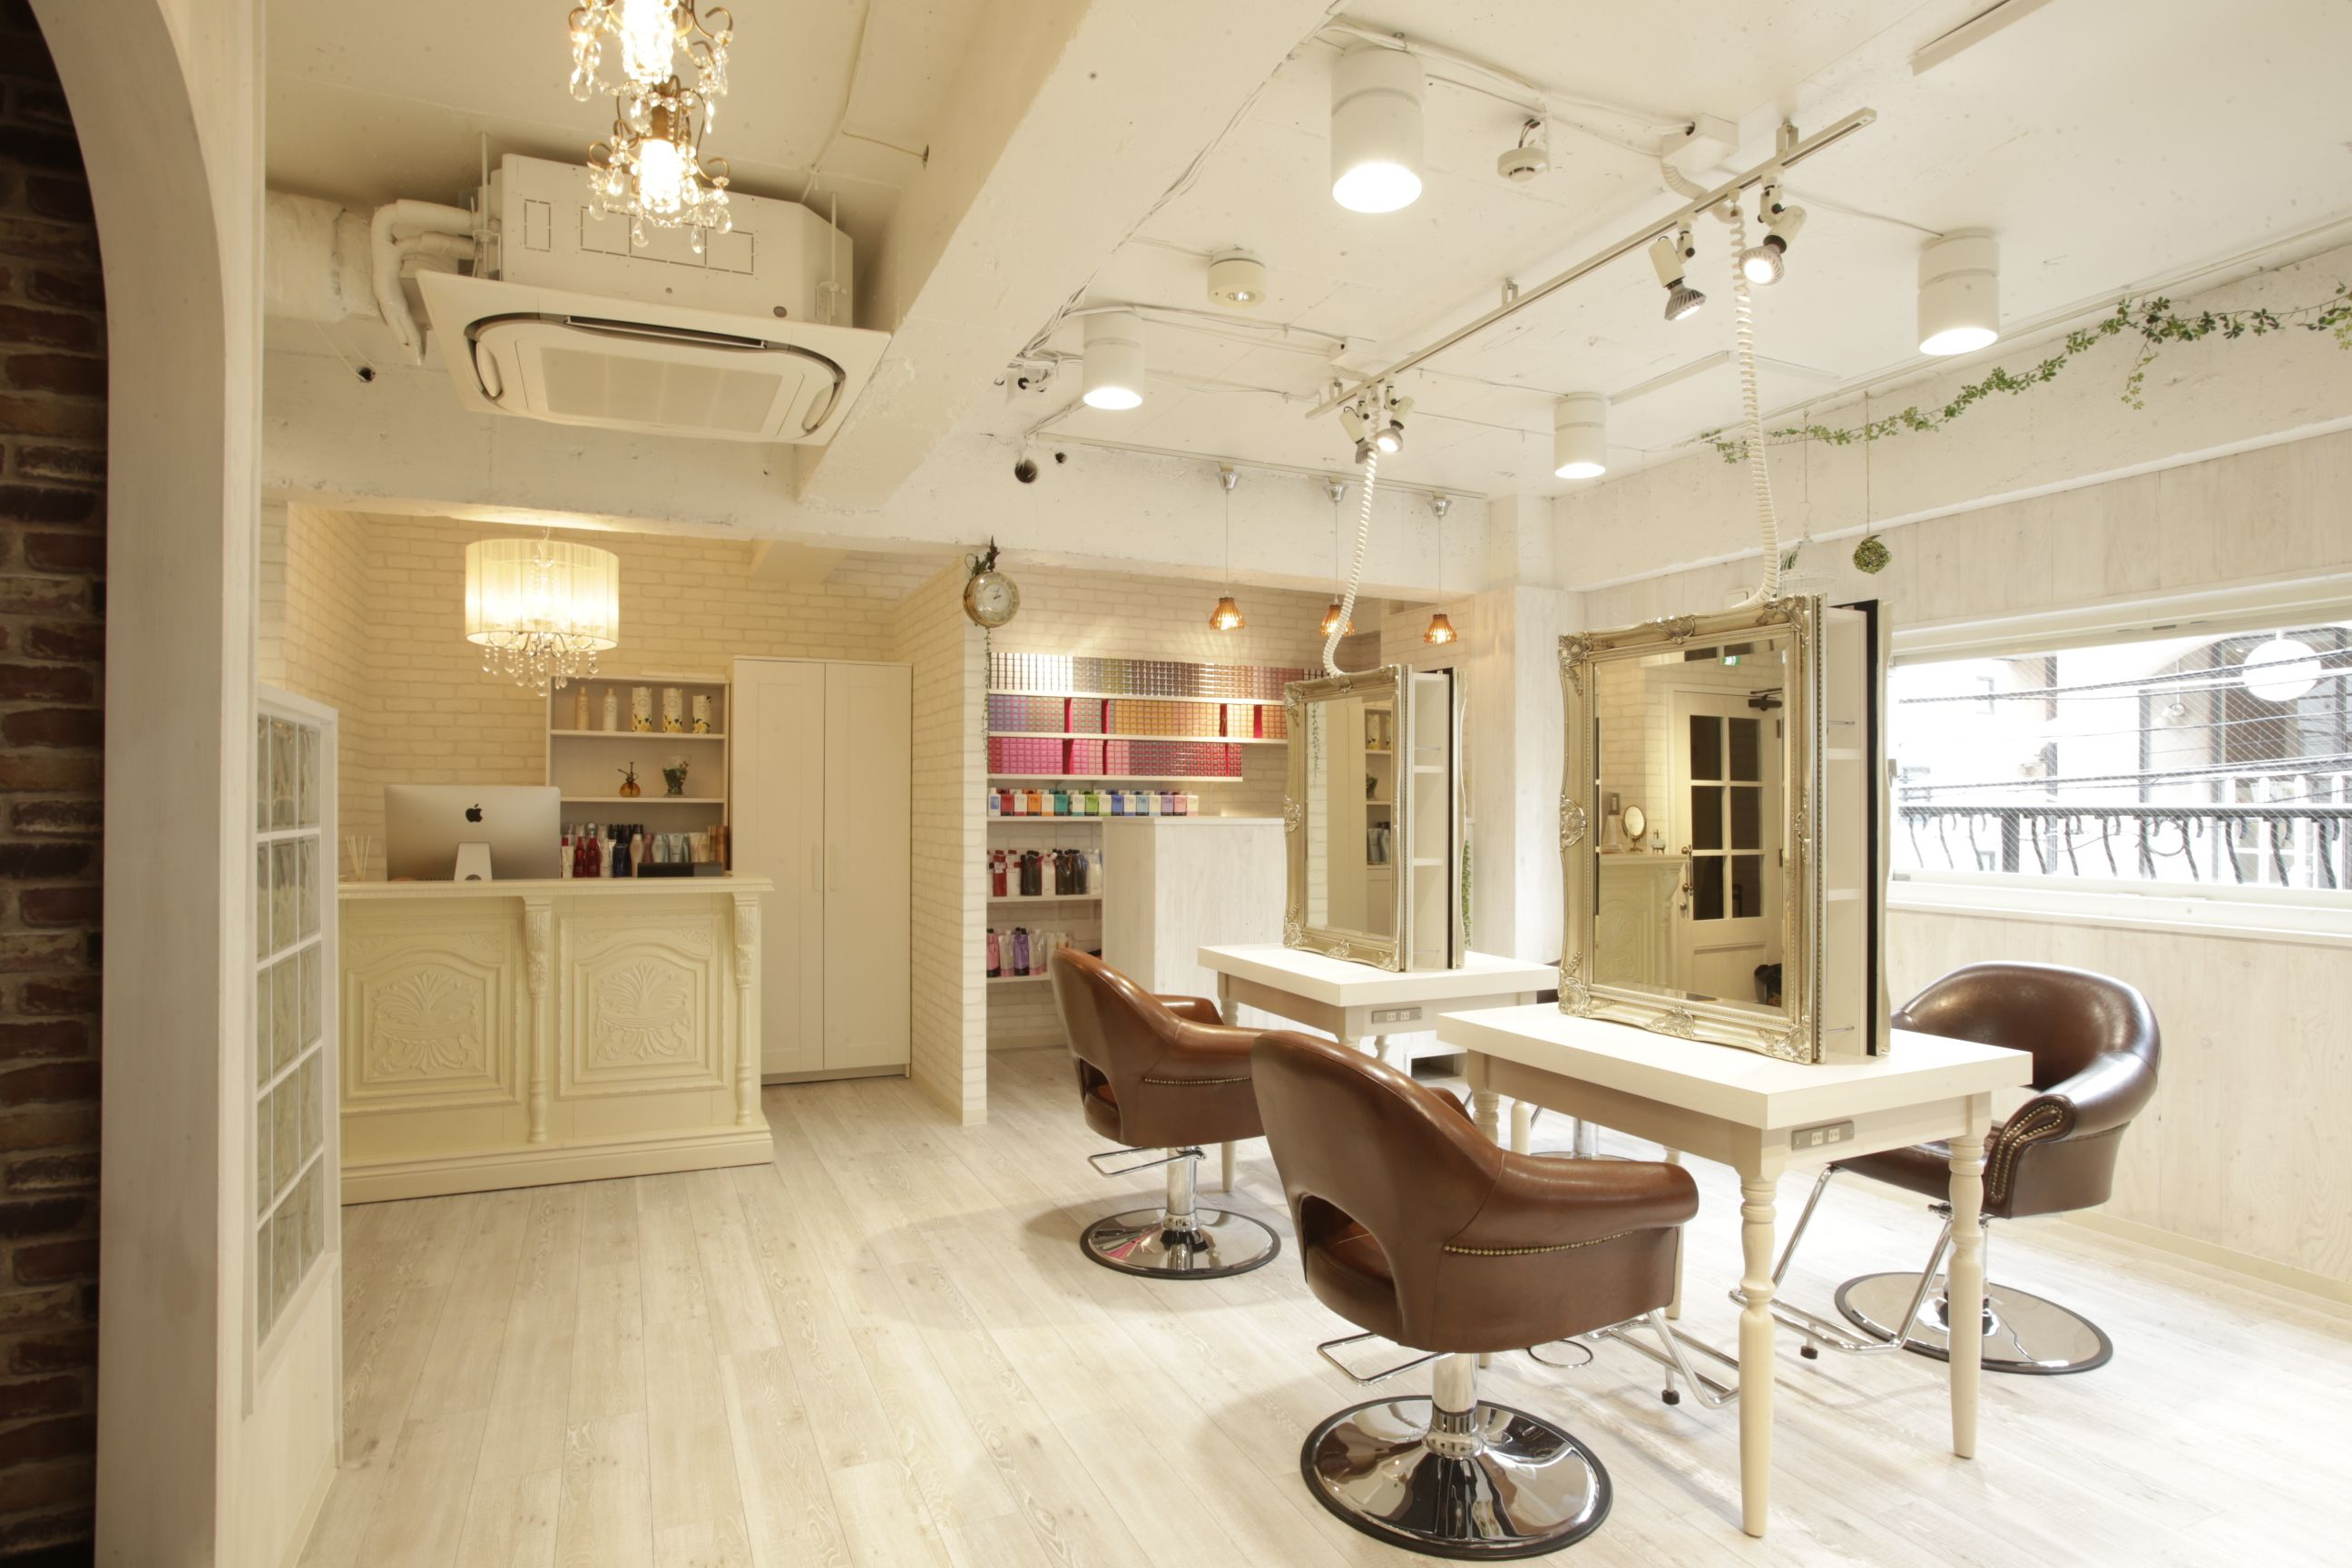 Beauty Salon Design Ideas beauty salon design plans beauty salons design ideas Beauty Salon Interior Design Ideas Hair Space Decor Japan Antique